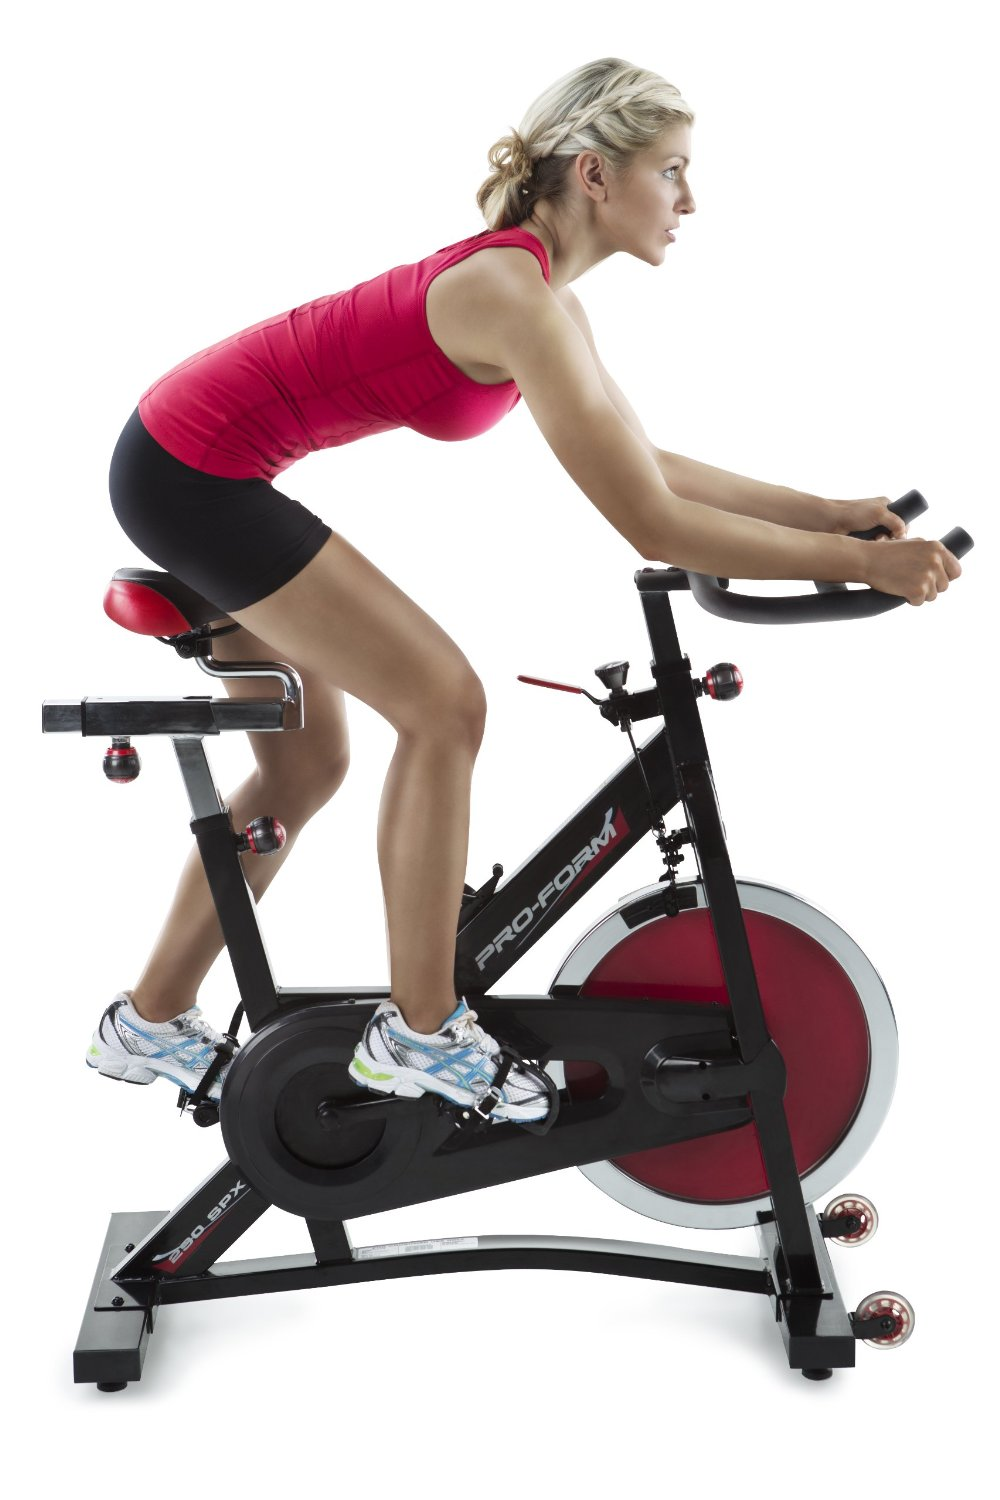 top 10 best affordable home exercise bikes on amazon. Black Bedroom Furniture Sets. Home Design Ideas